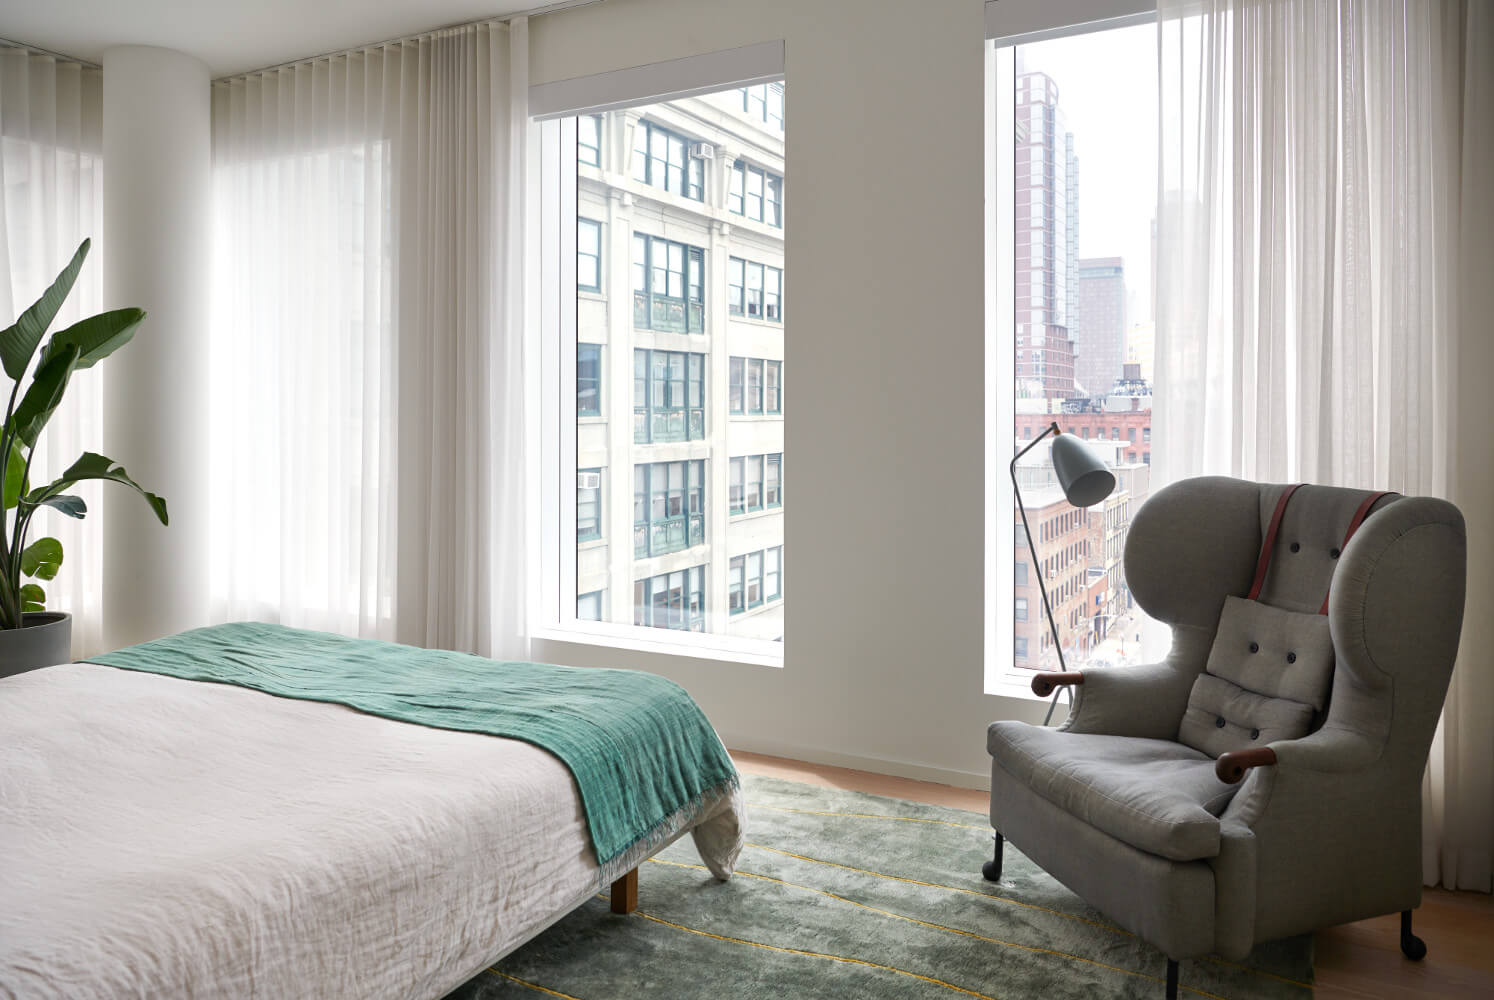 In the master bedroom of this DUMBO apartment, a new rug and relocated furnishings make the space both cozy and thrilling.